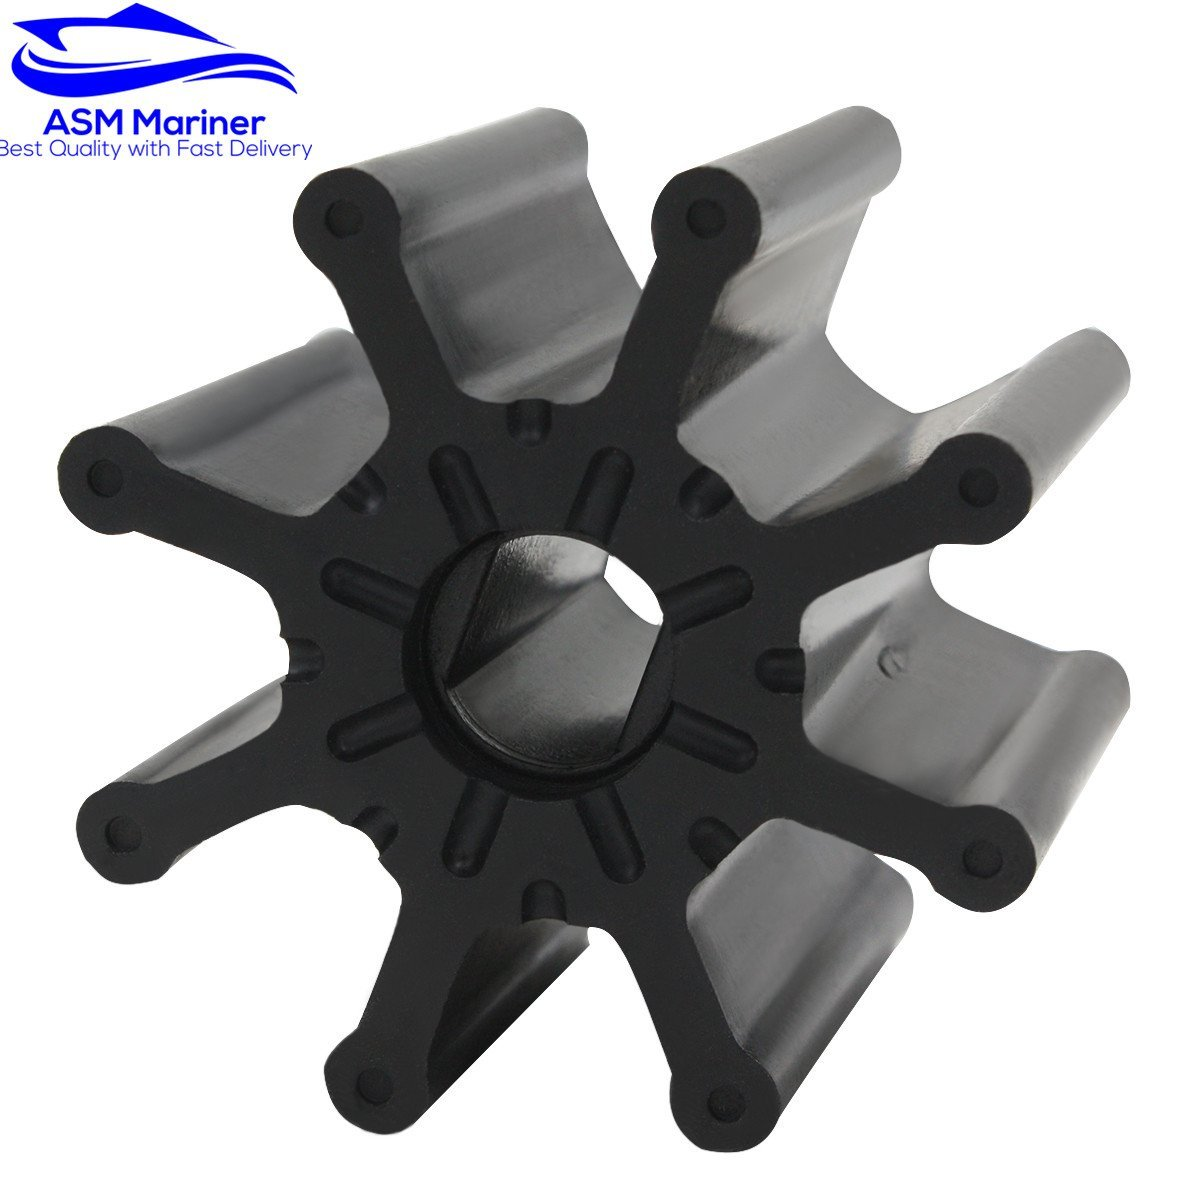 New Water Pump Impeller for Mercury 47-862232A2 47-8M0104229  18-3016 500159